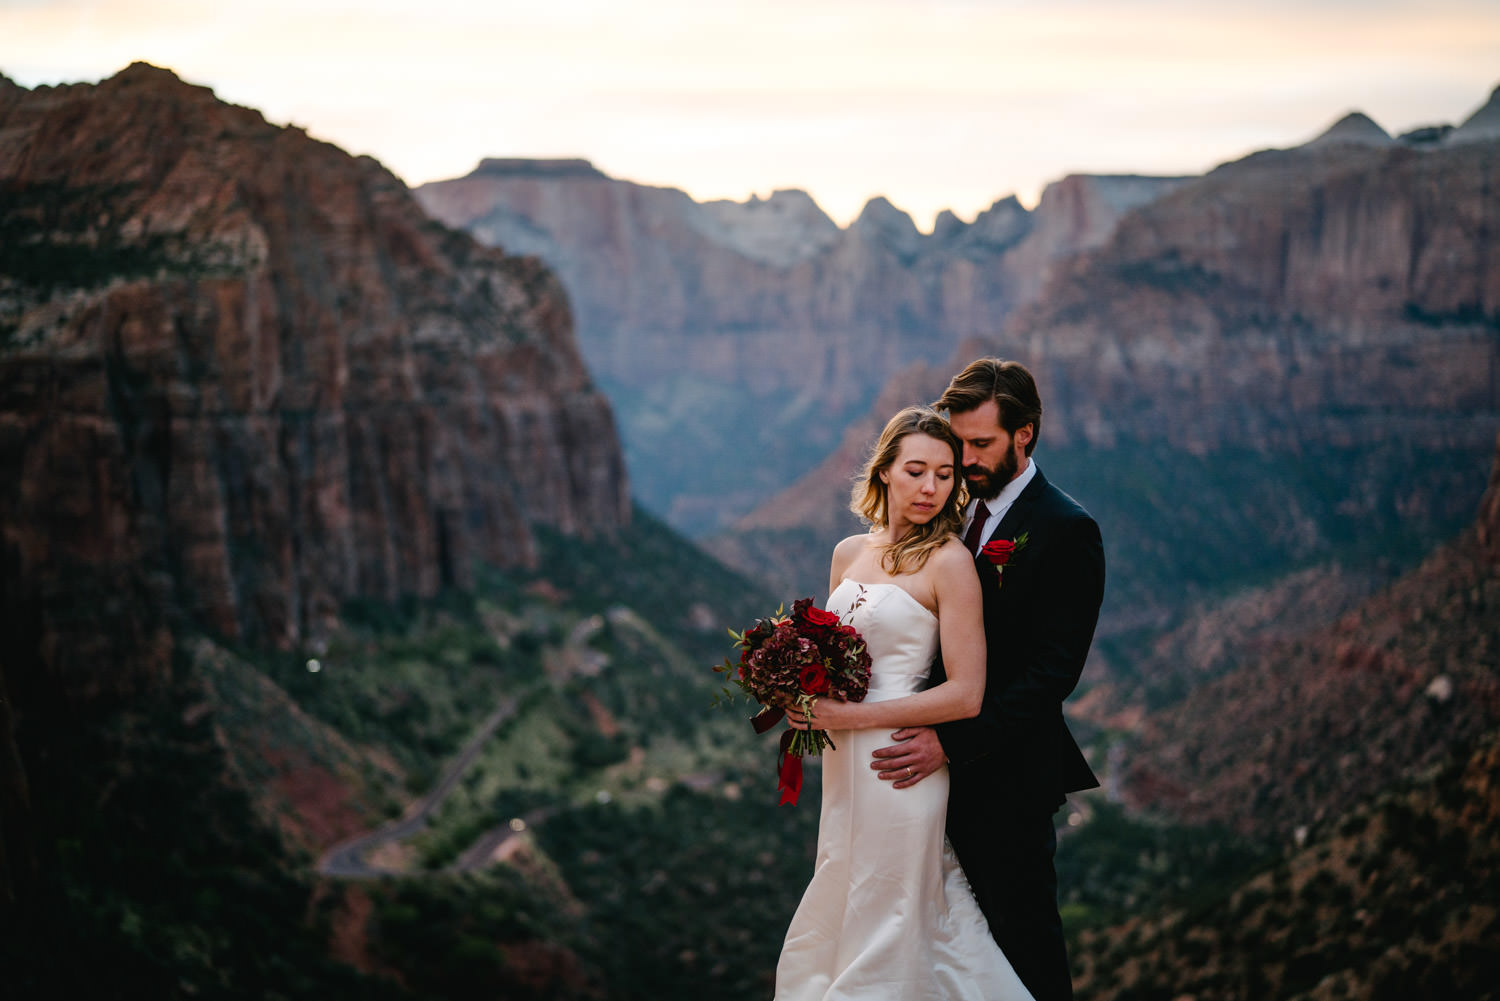 zionnationalpark_utah_destinationweddingphotographer_austendiamondphotography-14